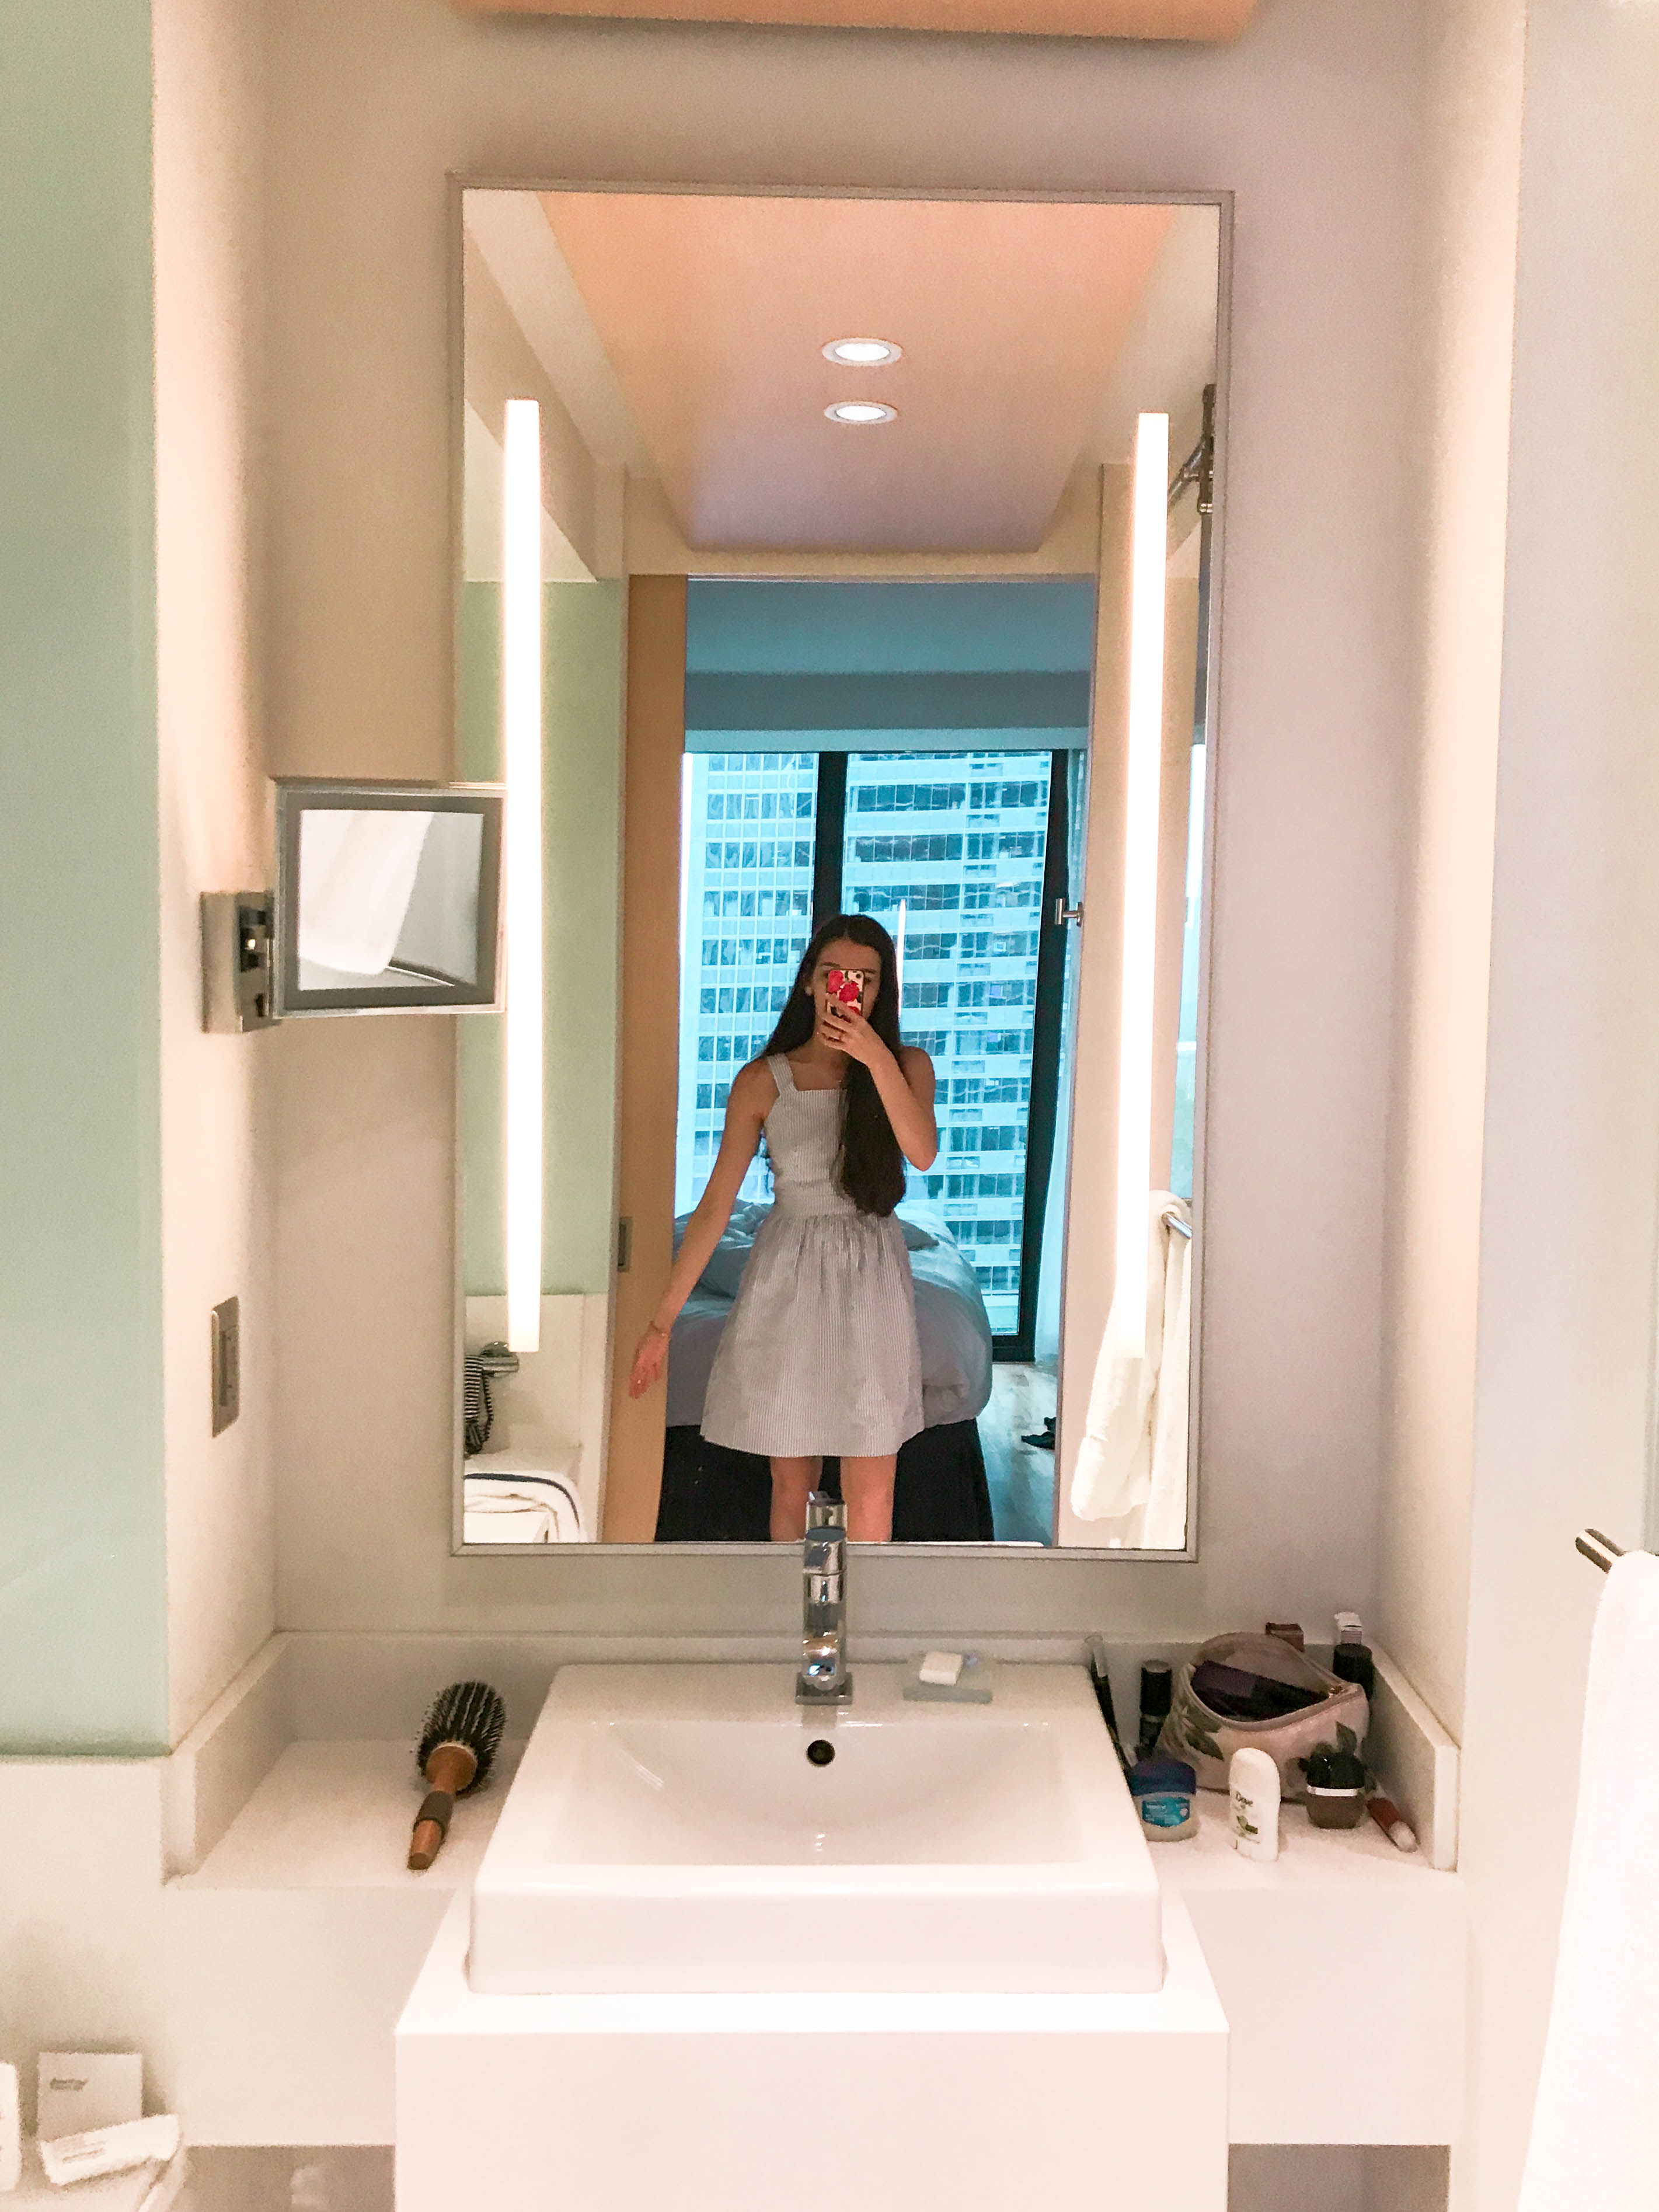 Radisson Blu Aqua hotel review park suite bathroom large bathtub contemporary sleek modern bathroom lit mirror j. crew seersucker fit and flare dress preppy style upscale place to stay mirror selfie